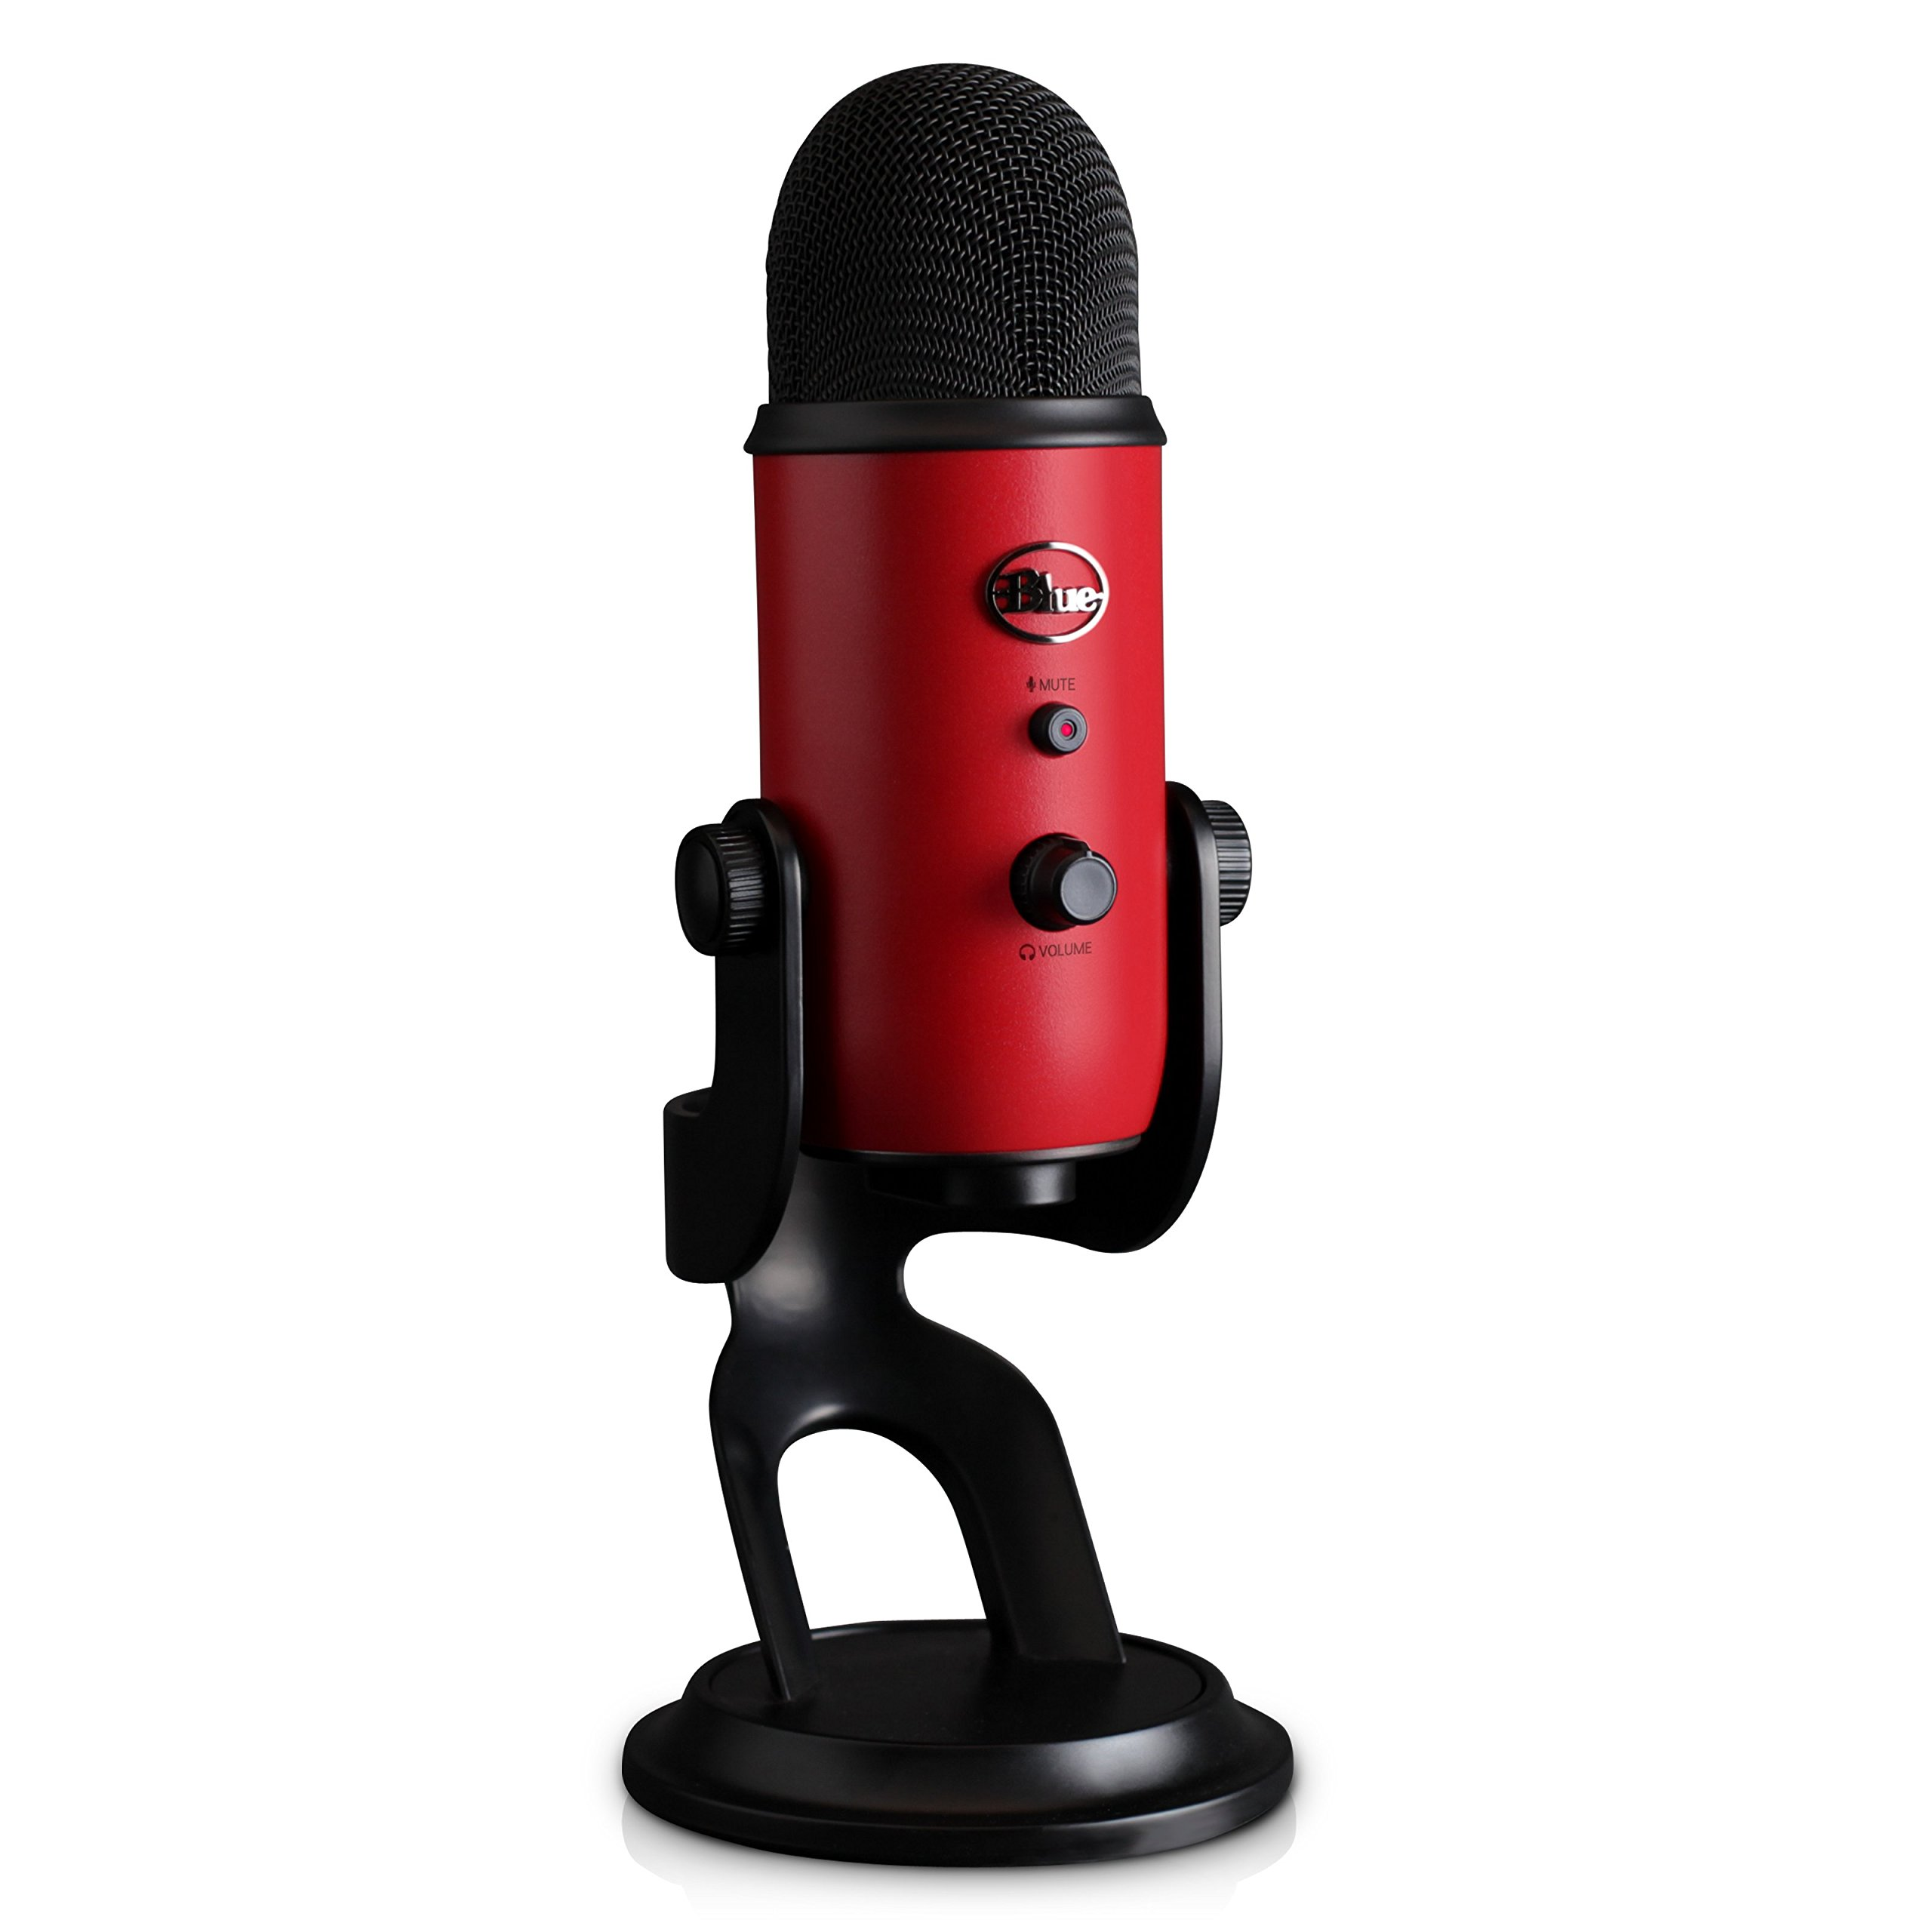 Blue Yeti USB Microphone - Satin Red by Blue (Image #4)